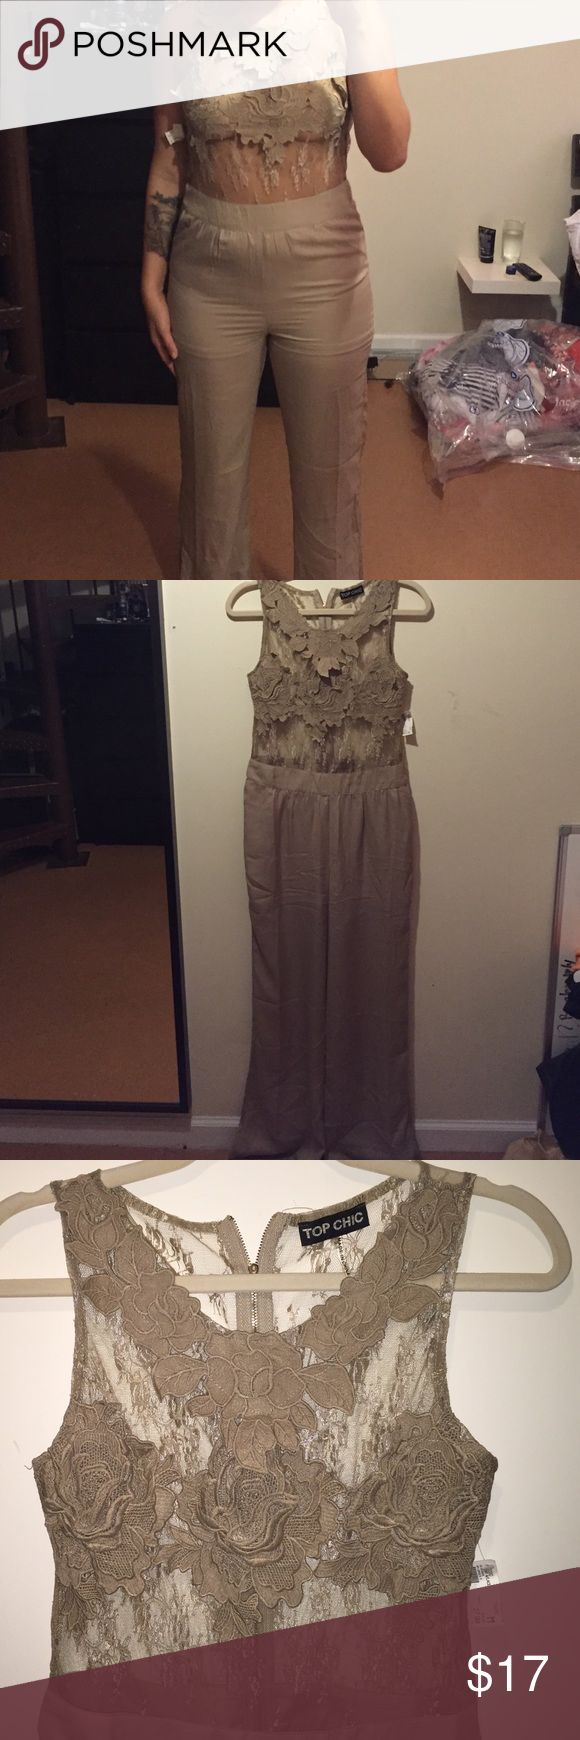 Taupe Lace Jumpsuit A little too tight on me!!! :( Gorgeous Jumpsuit that hugs all the right places and shows some skin. Originally $28 from Top Chic  bought in a boutique NYC. Dresses